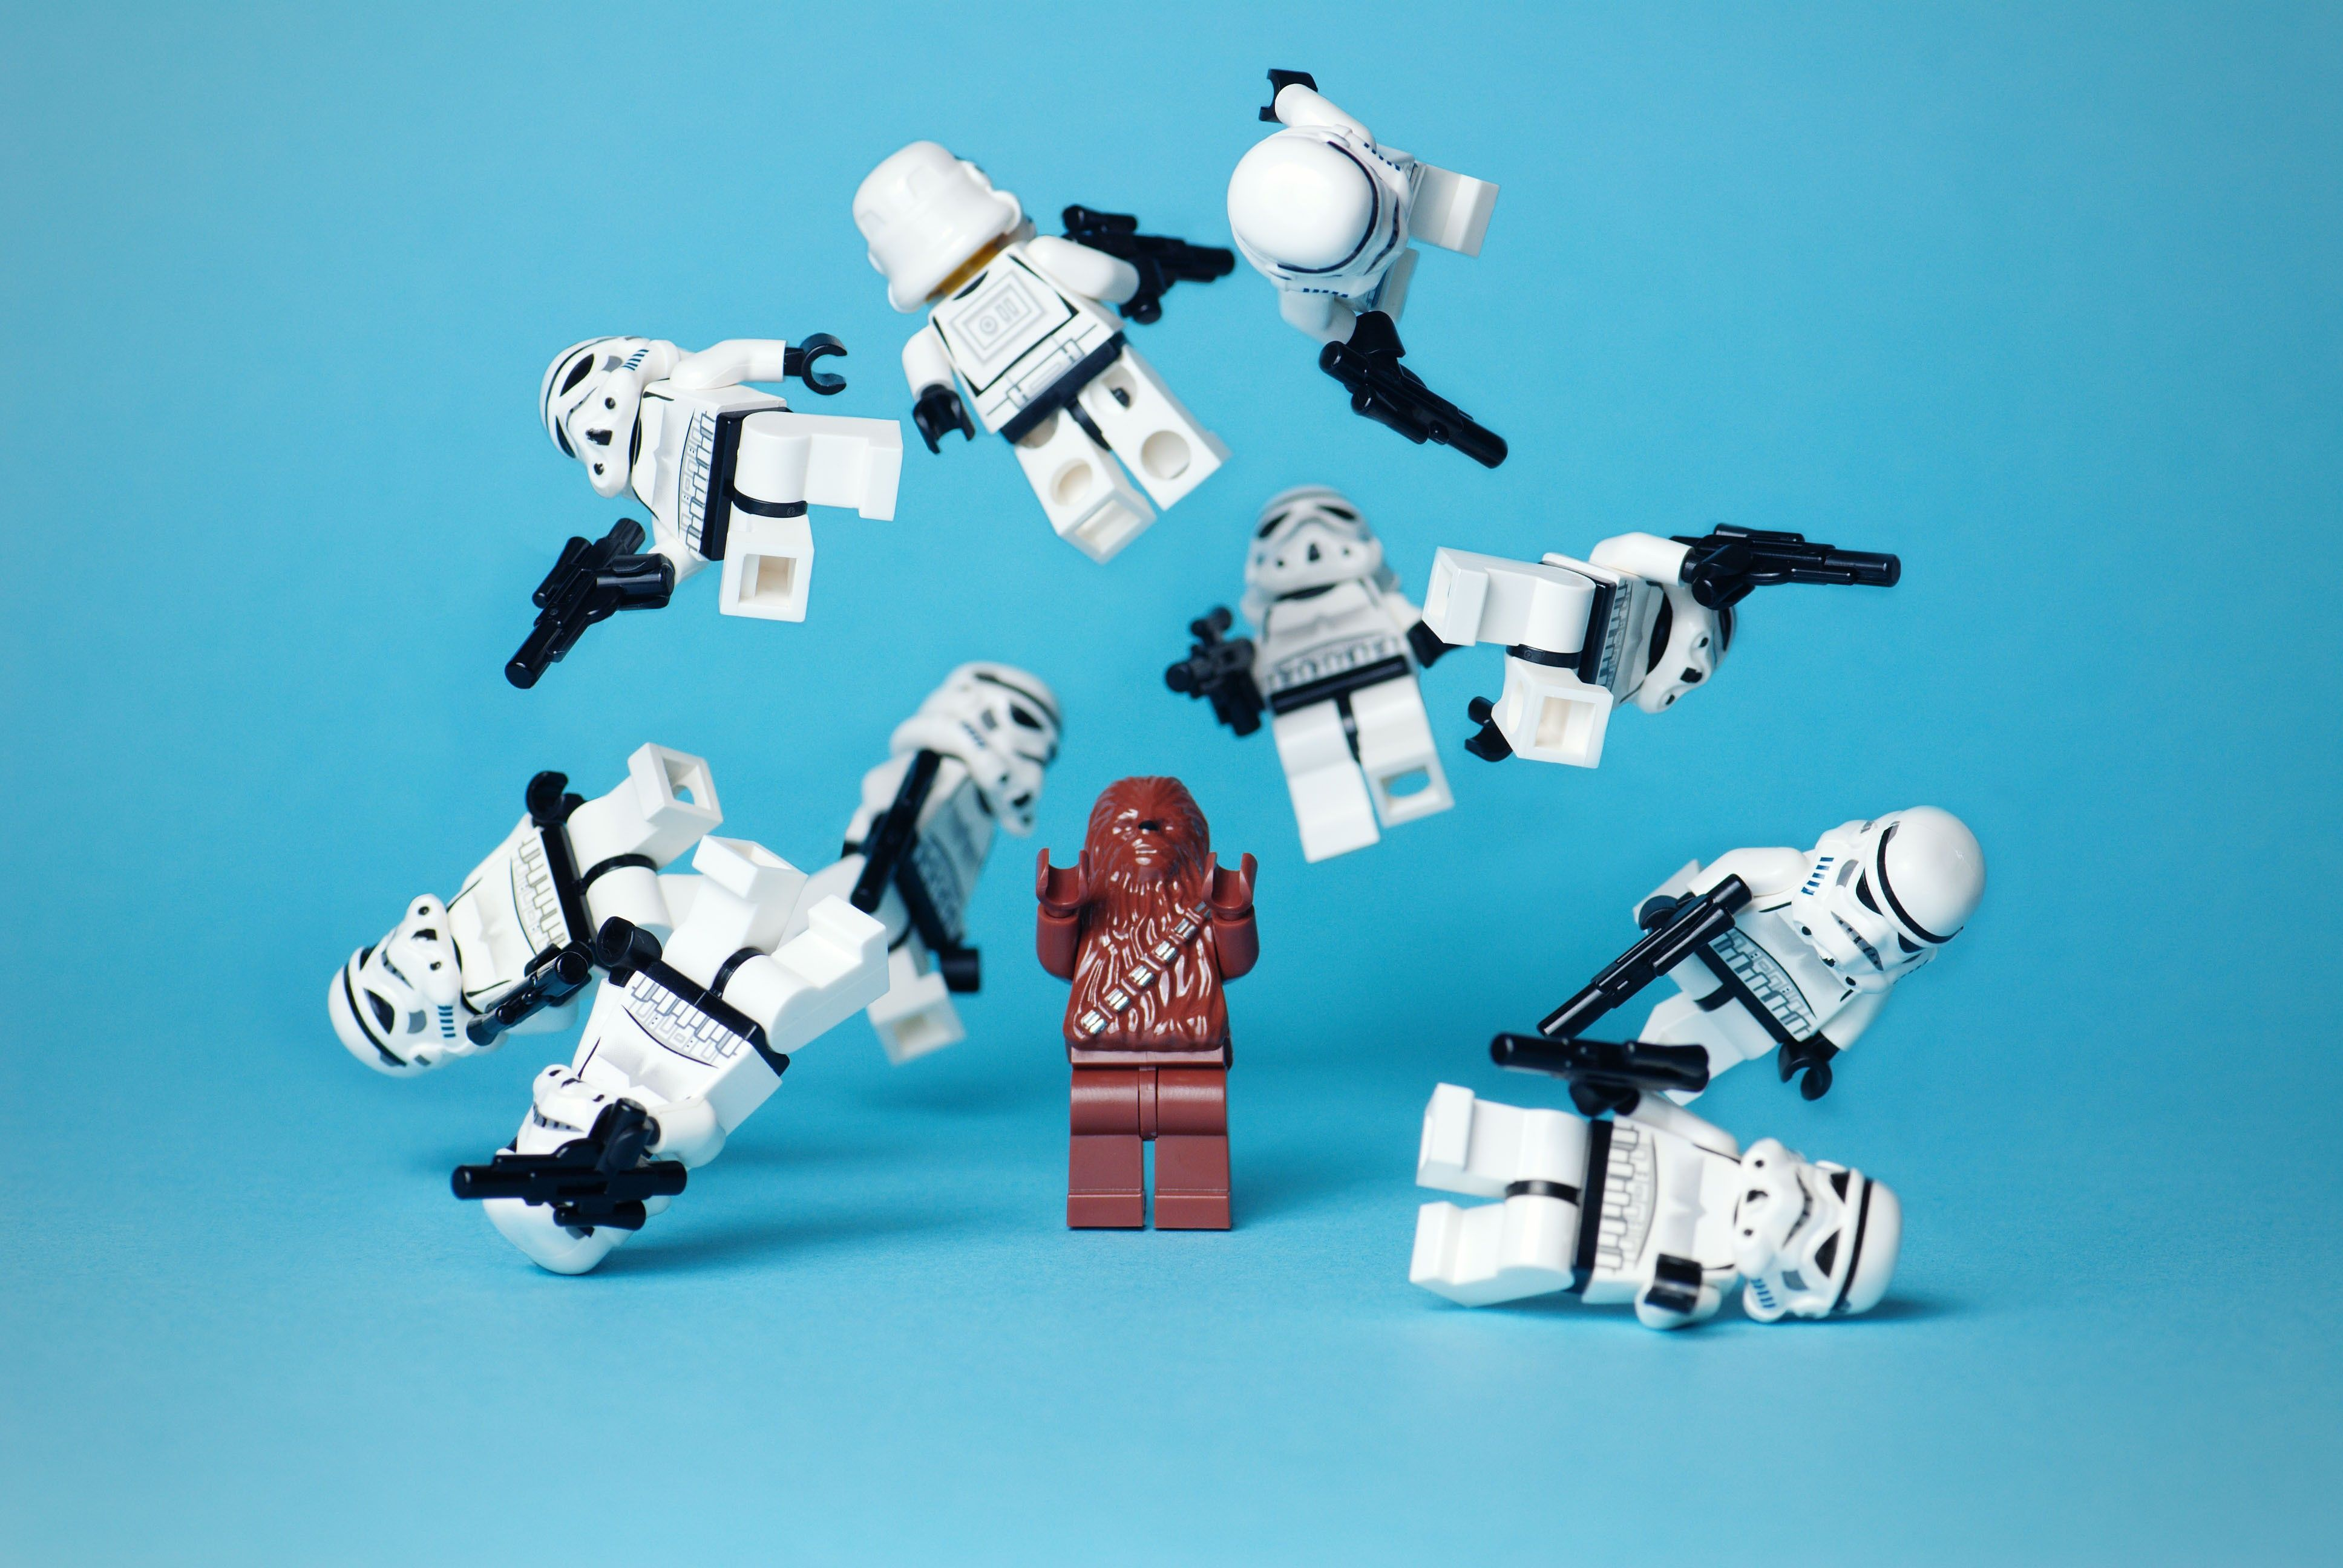 Funny Lego Star Wars Wallpapers Top Free Funny Lego Star Wars Backgrounds Wallpaperaccess